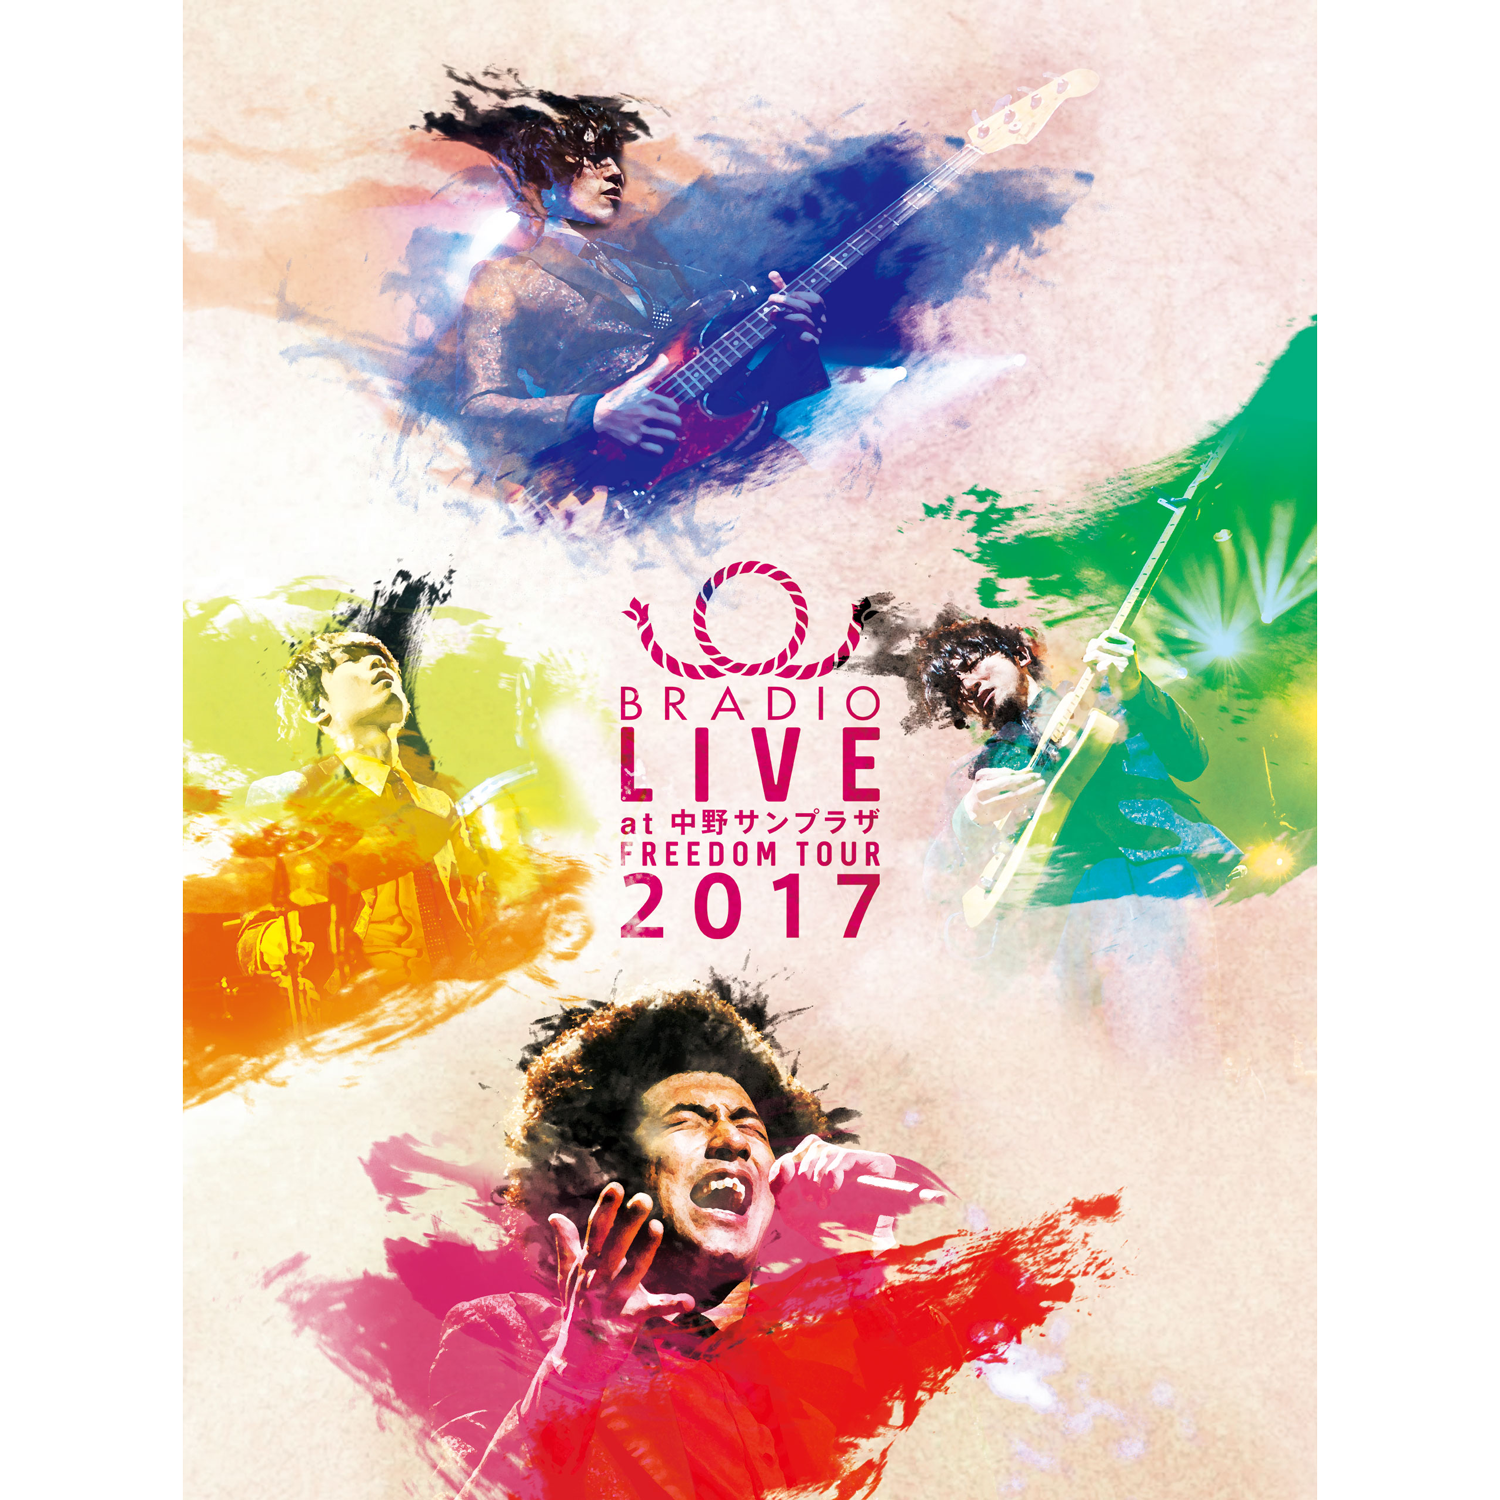 BRADIO LIVE at 中野サンプラザ-FREEDOM tour 2017-(DVD)